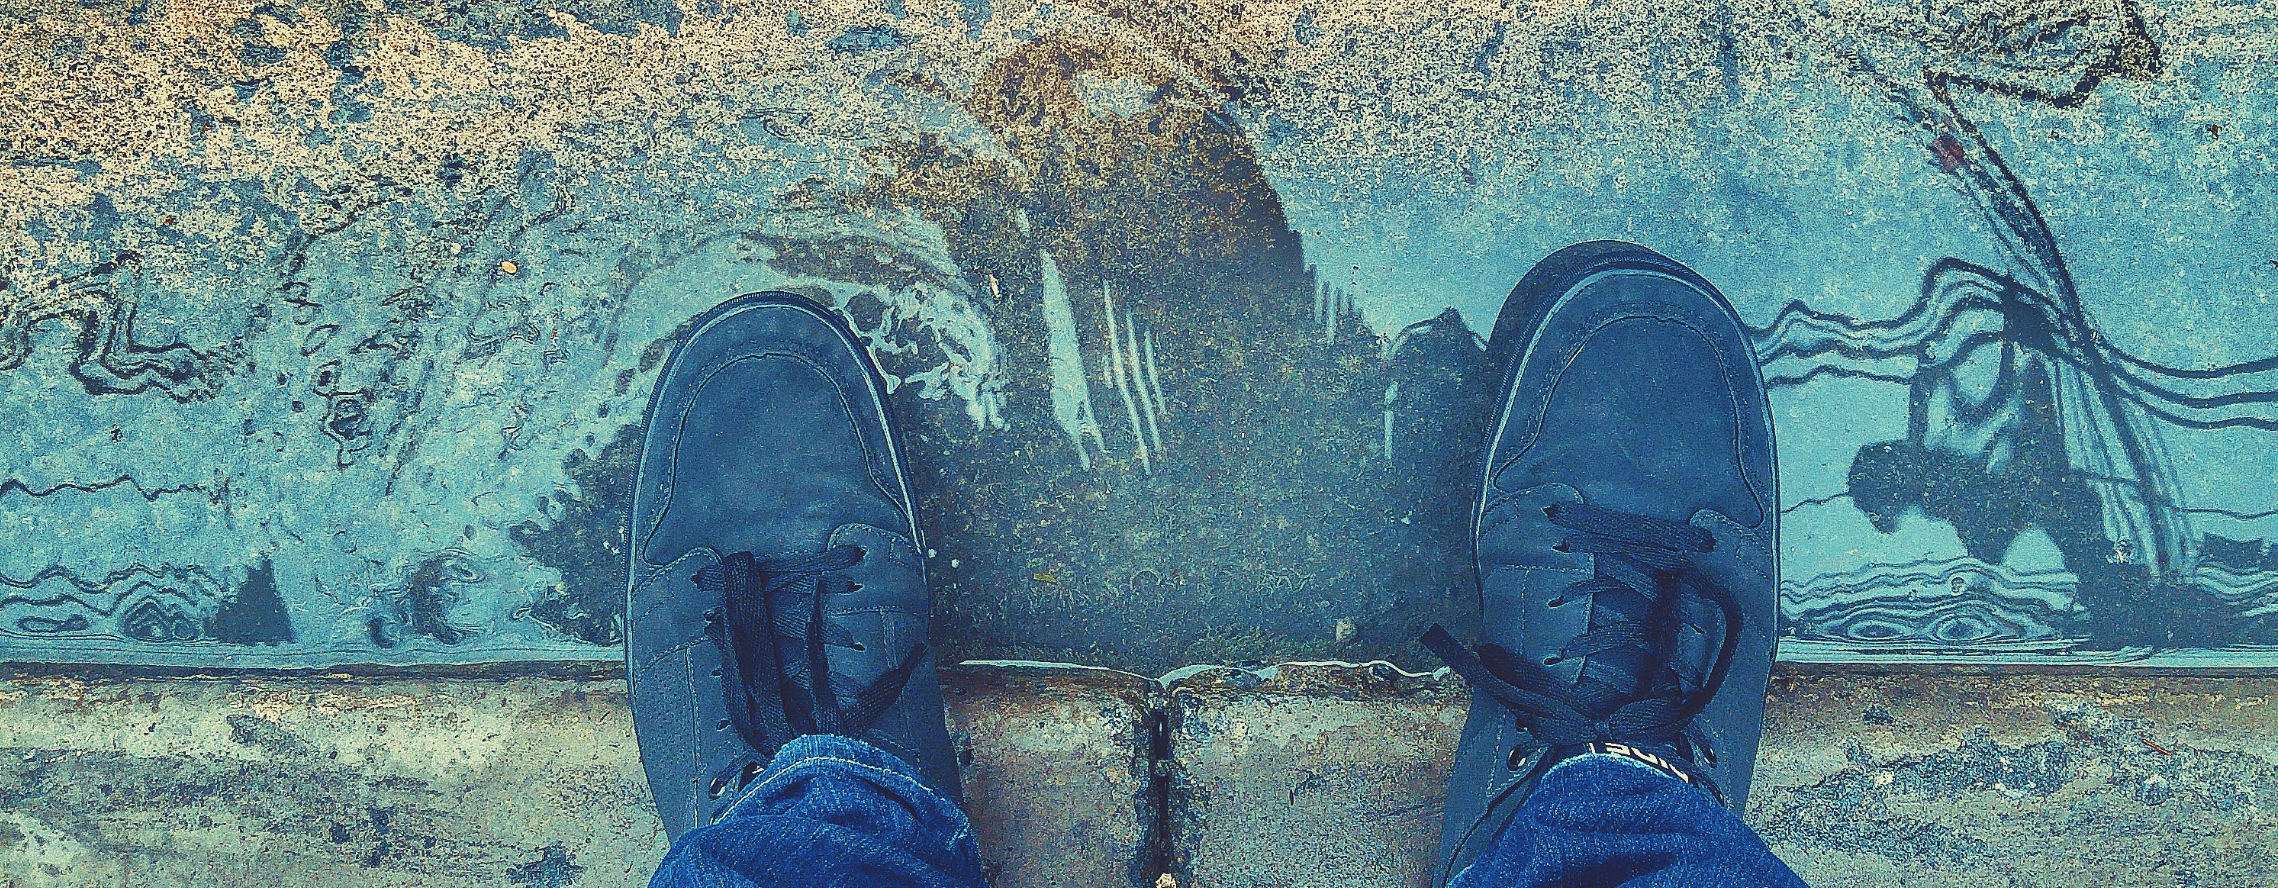 feet standing in a puddle by the sidewalk